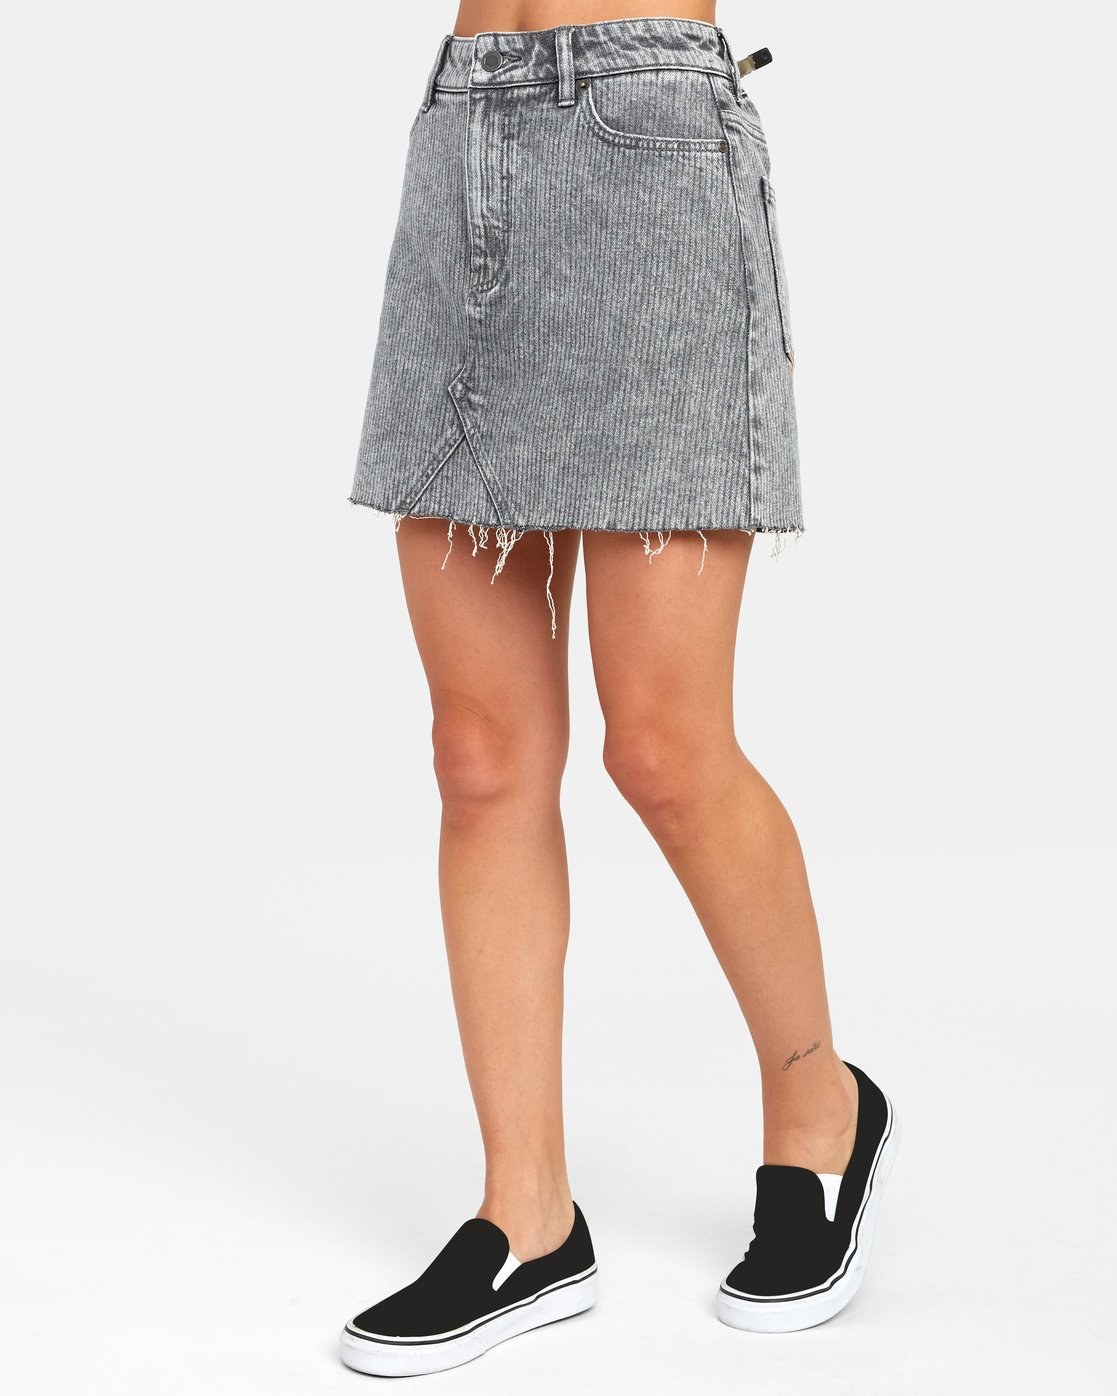 1 SIENA HIGH RISE DENIM SKIRT Multicolor WK02VRSI RVCA